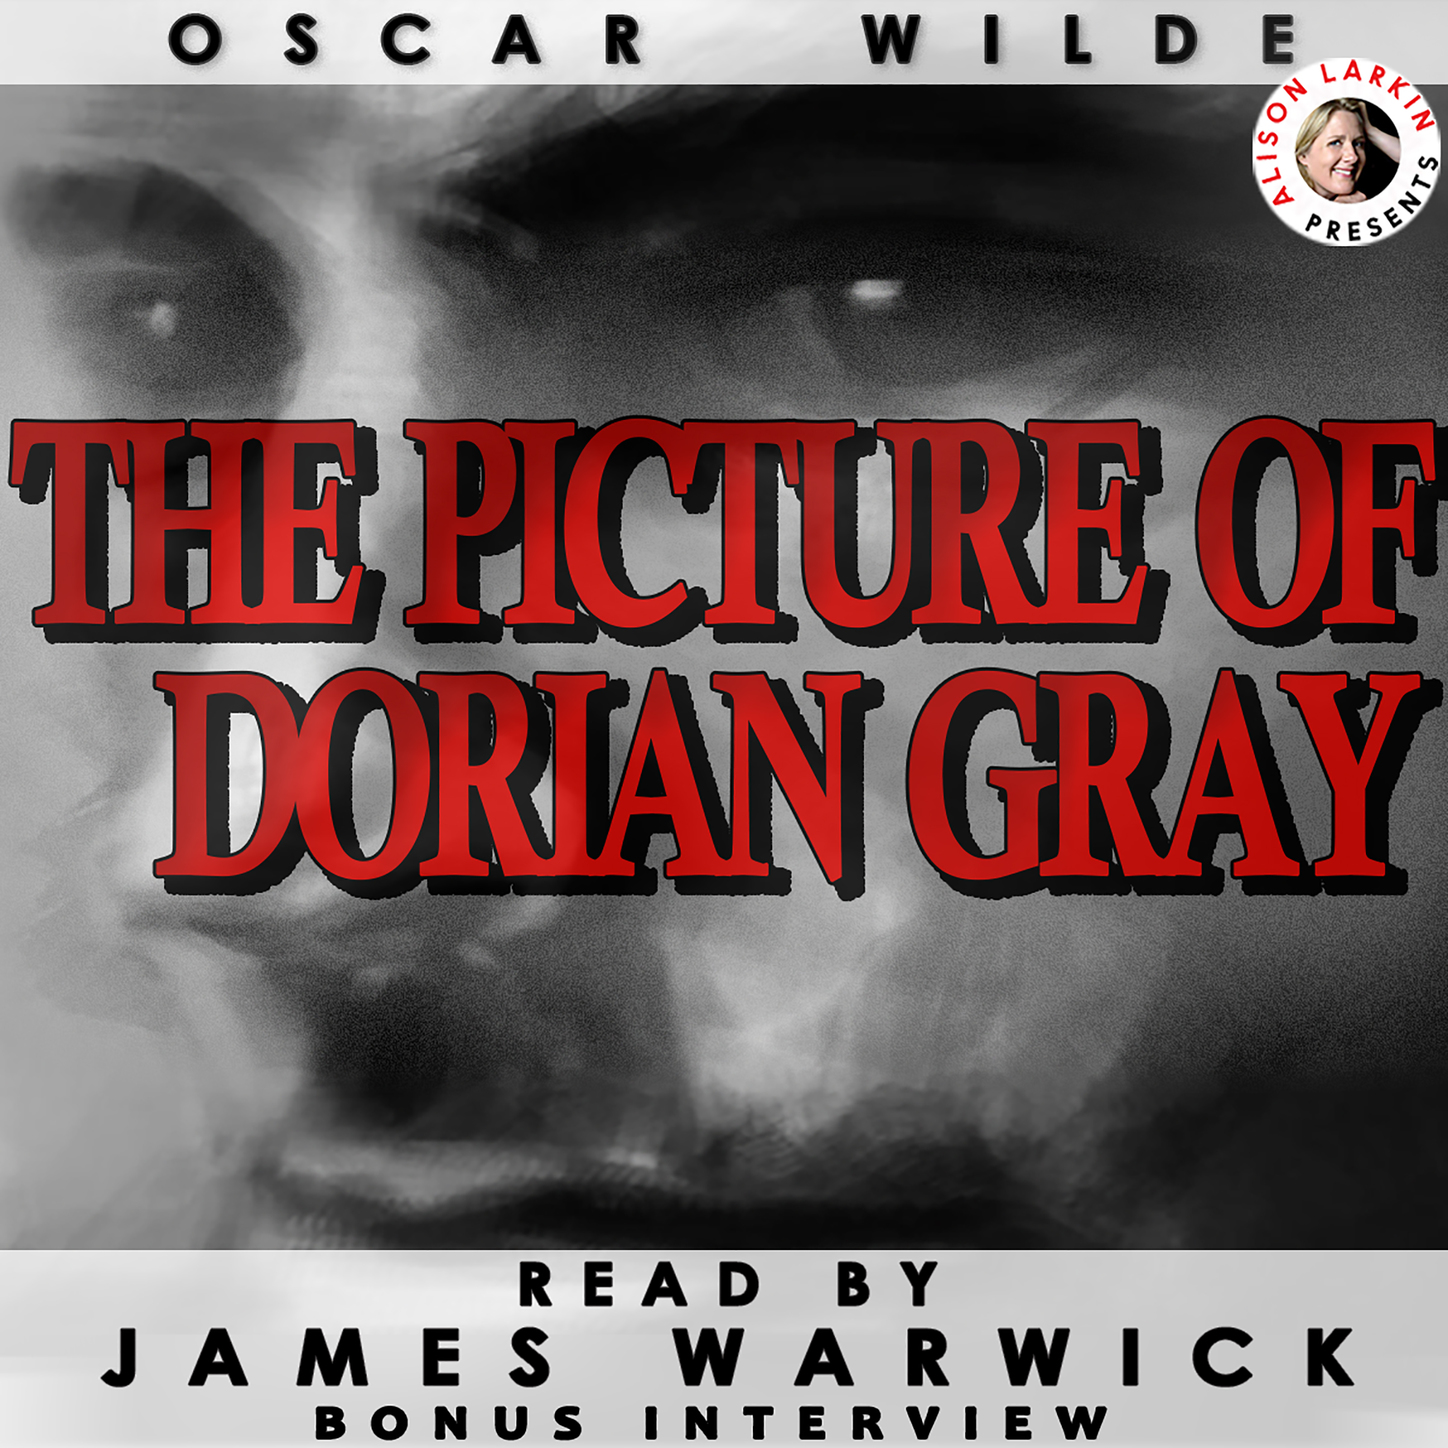 Oscar Wilde The Picture of Dorian Gray (Unabridged) wilde oscar the picture of dorian gray